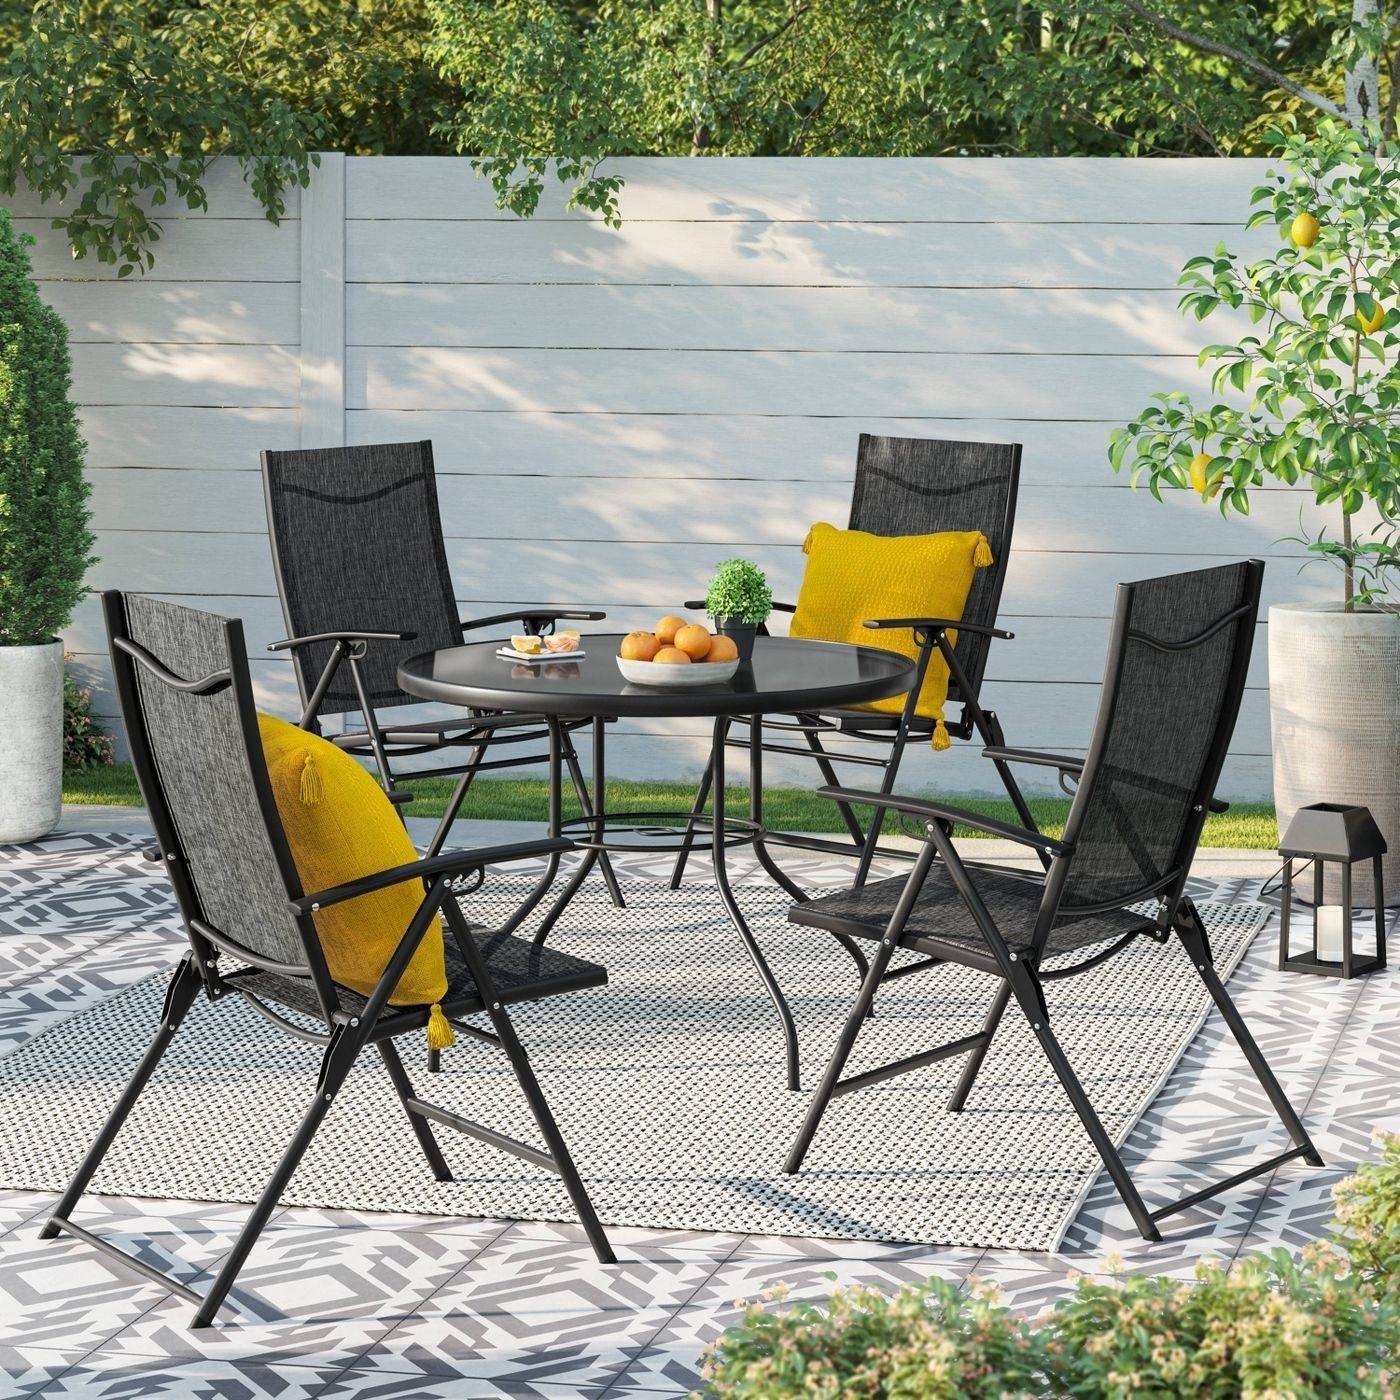 A round black table with four black folding chairs and two yellow pillows